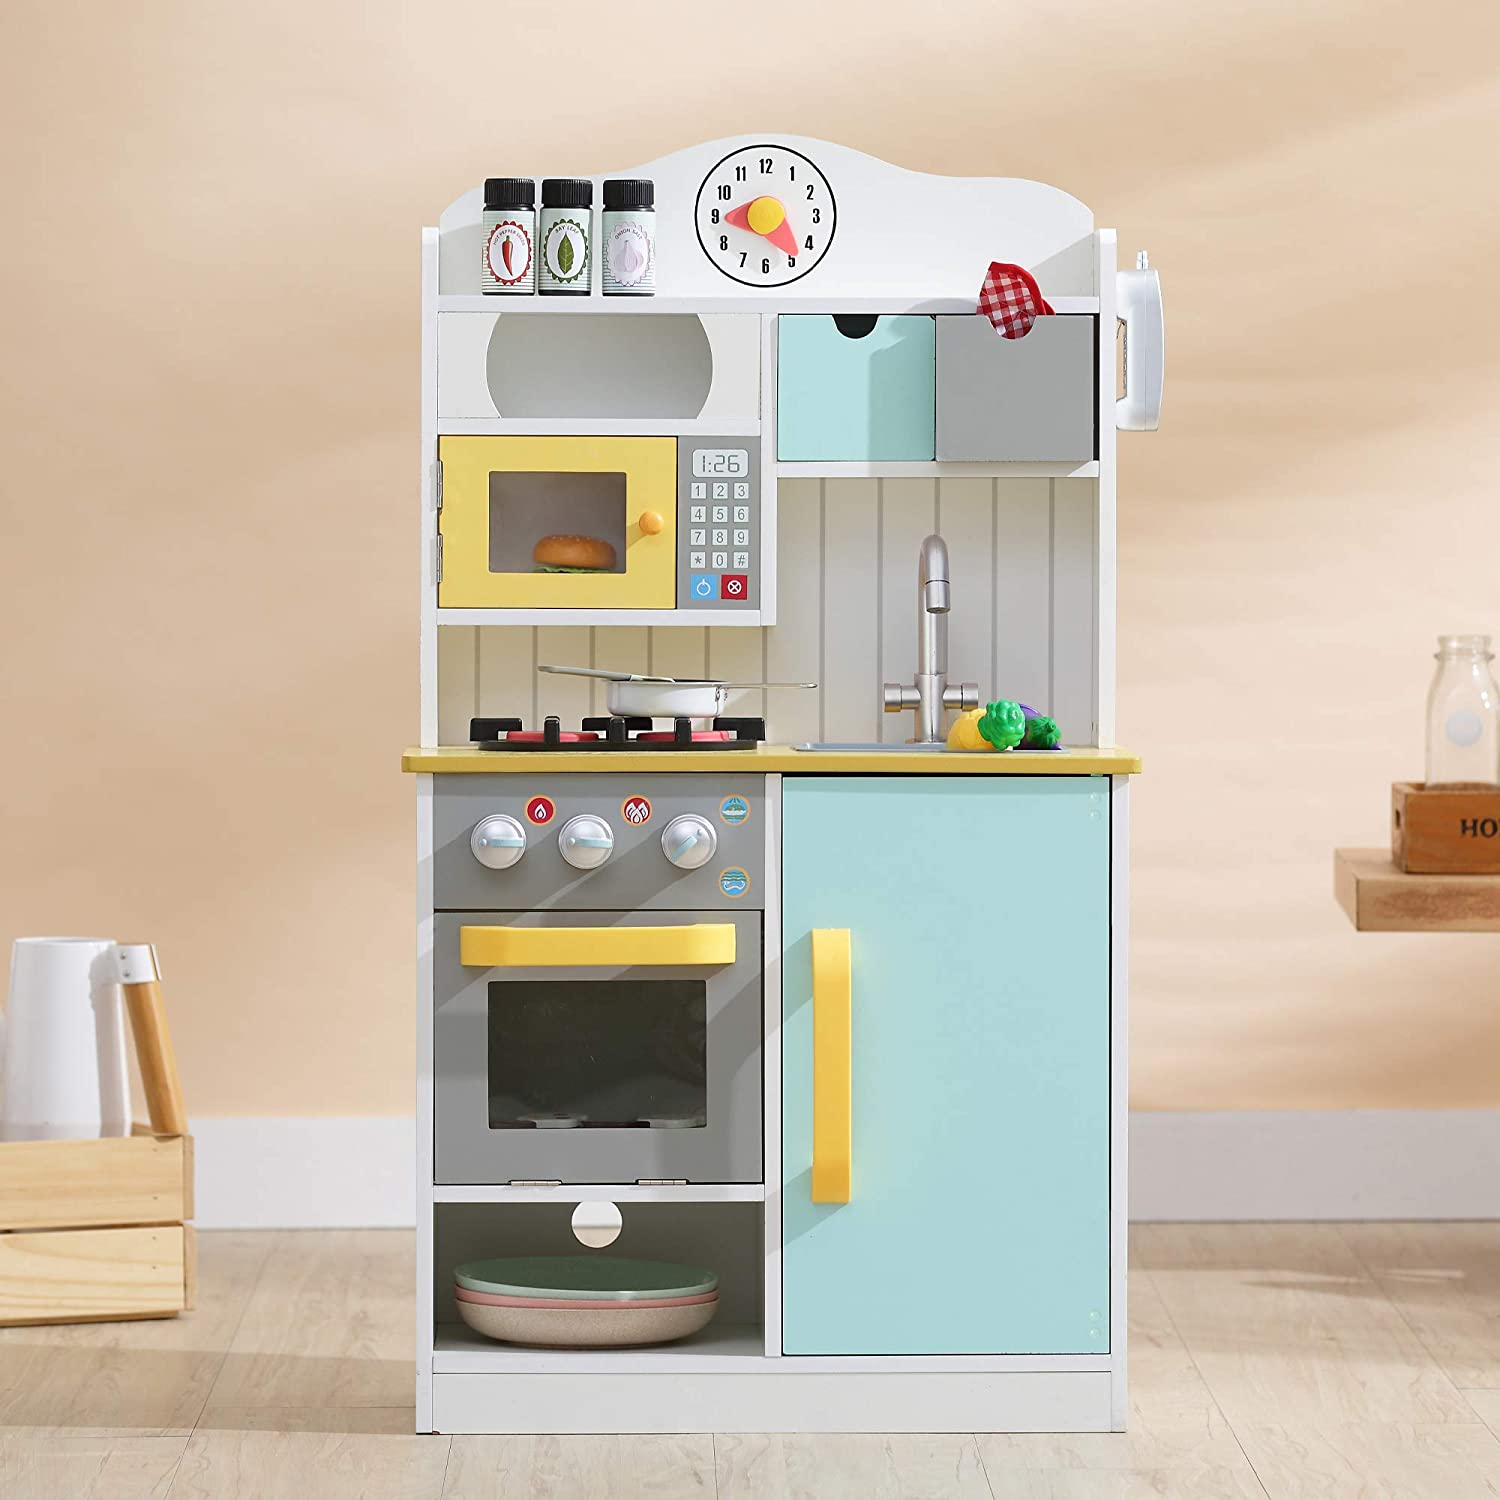 Teamson Kids Little Chef Florence Classic Kids Play Kitchen Toddler Pretend Play Set with Accessories, 2 Drawers, and Clock White Green Yellow